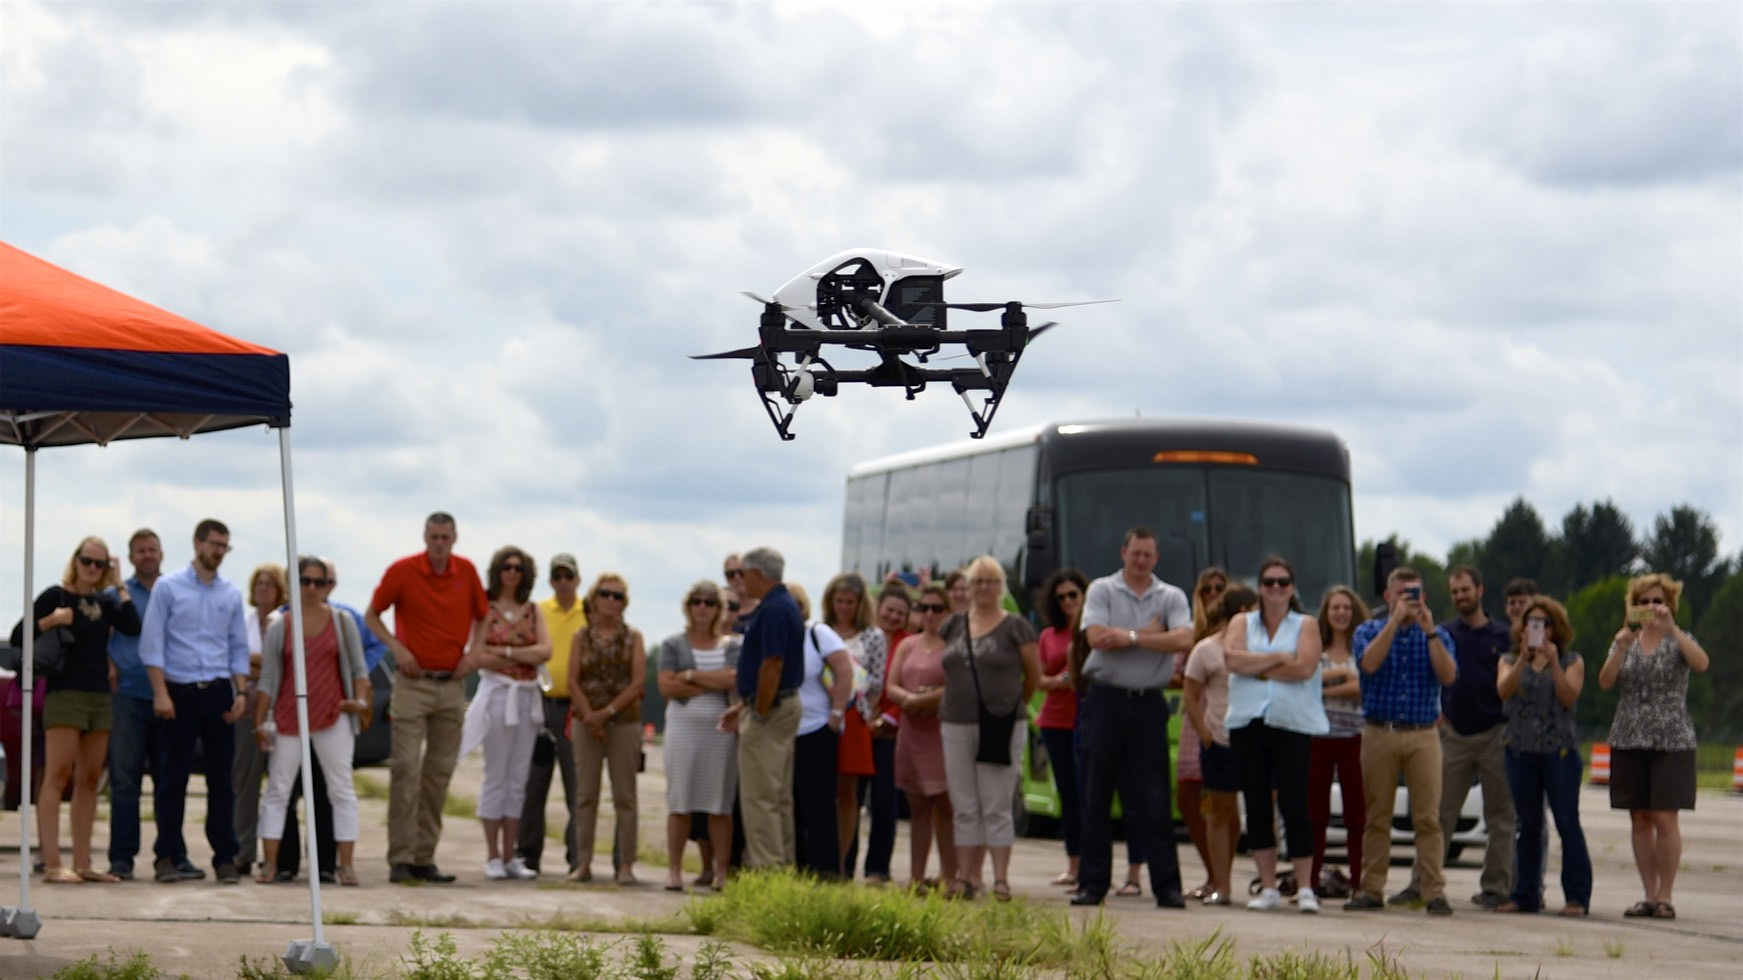 Drone Testing at NY UAS Test Site